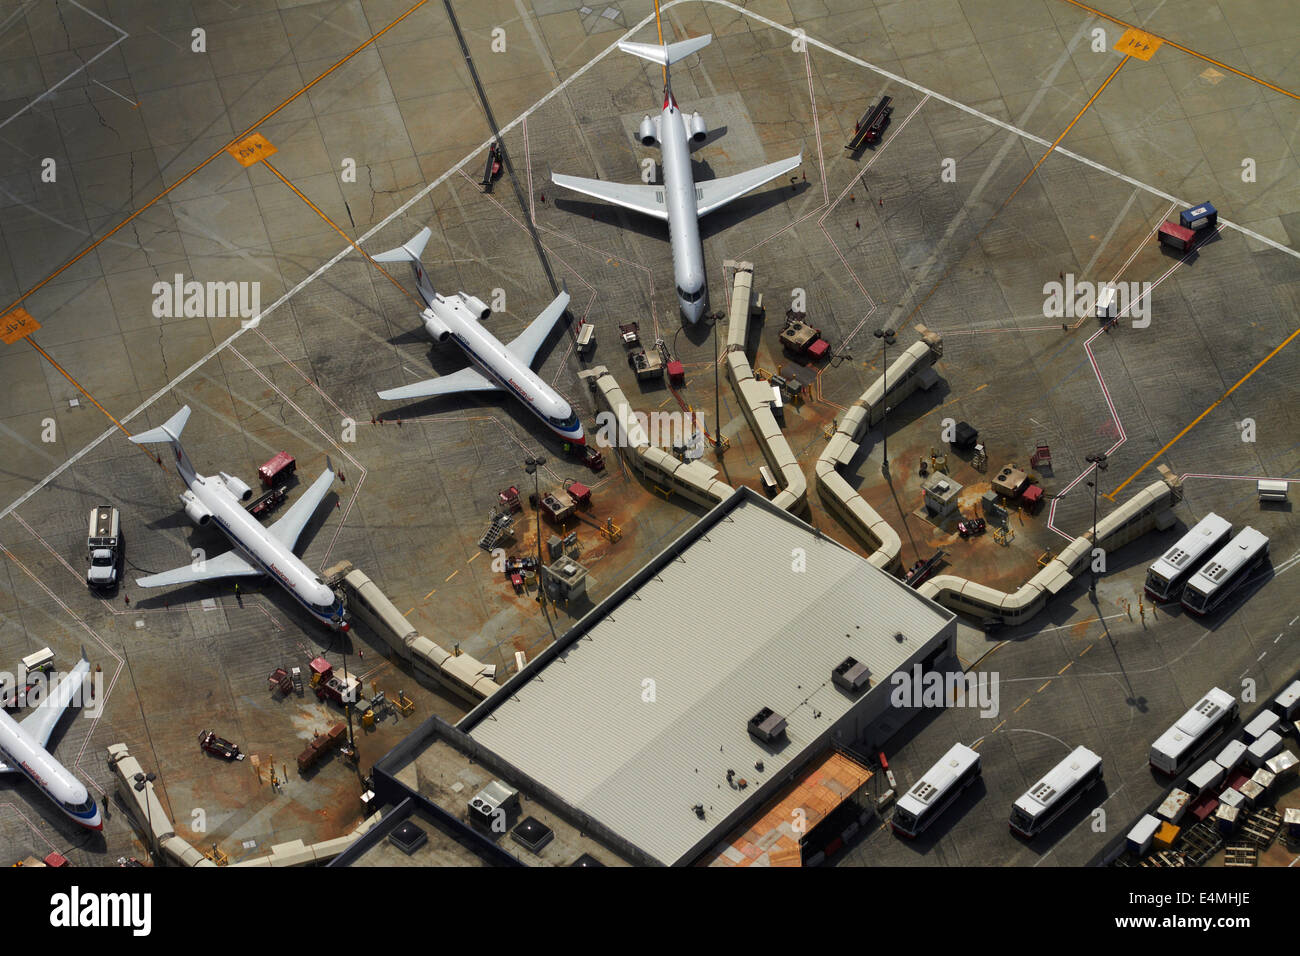 American Eagle planes and terminal at Los Angeles International Airport (LAX), Los Angeles, California, USA - aerial - Stock Image